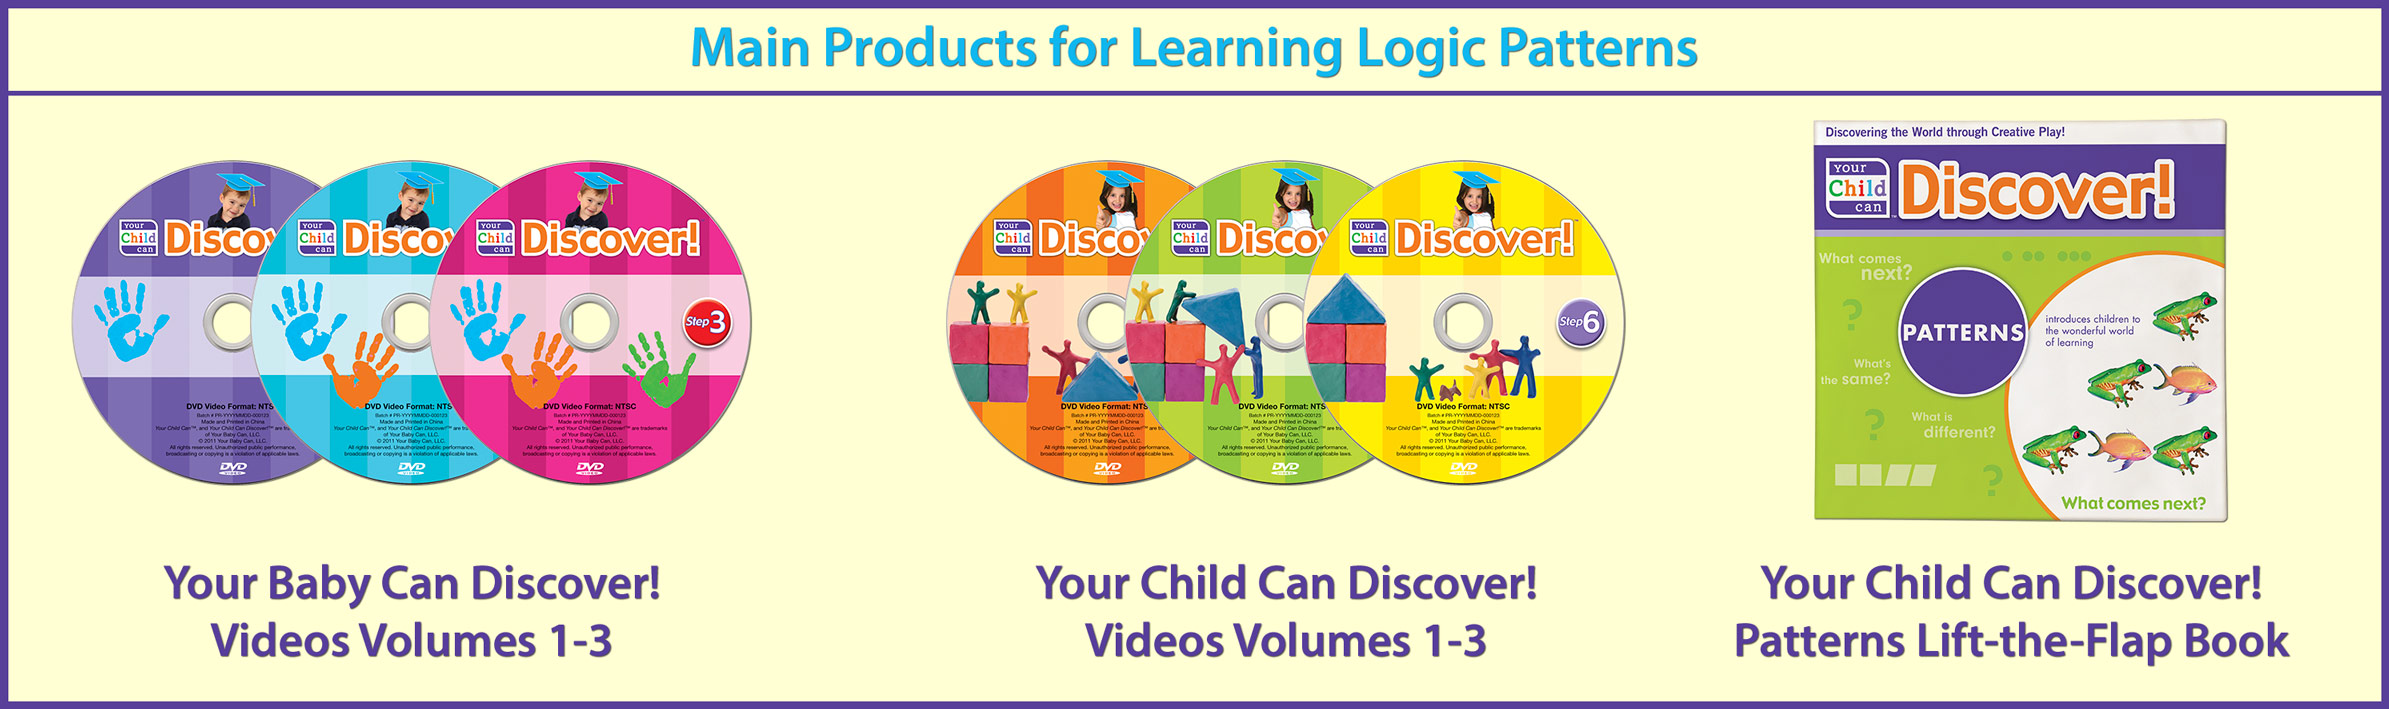 Main Products for Learning Logic Patterns